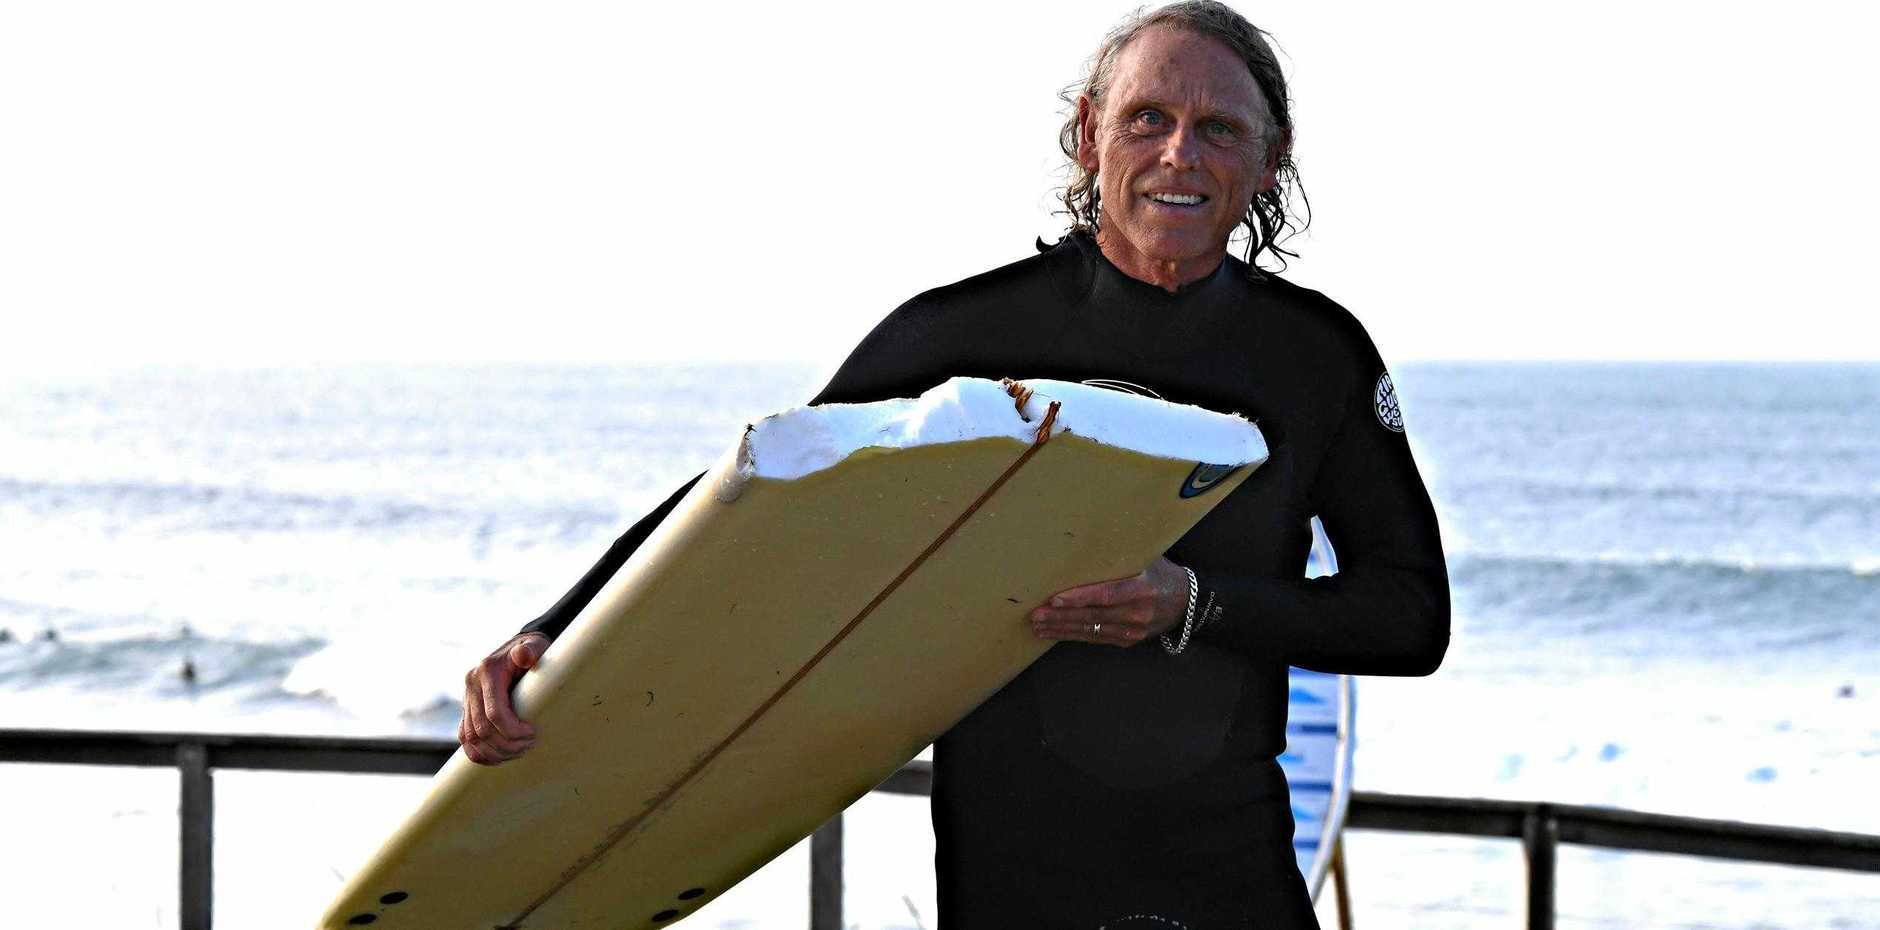 STAY SAFE: An unusually hazardous winter swell is causing havoc on Sunshine Coast beaches. Doug Polain on holiday from Western Australia broke his favourite longboard in the rough conditions.